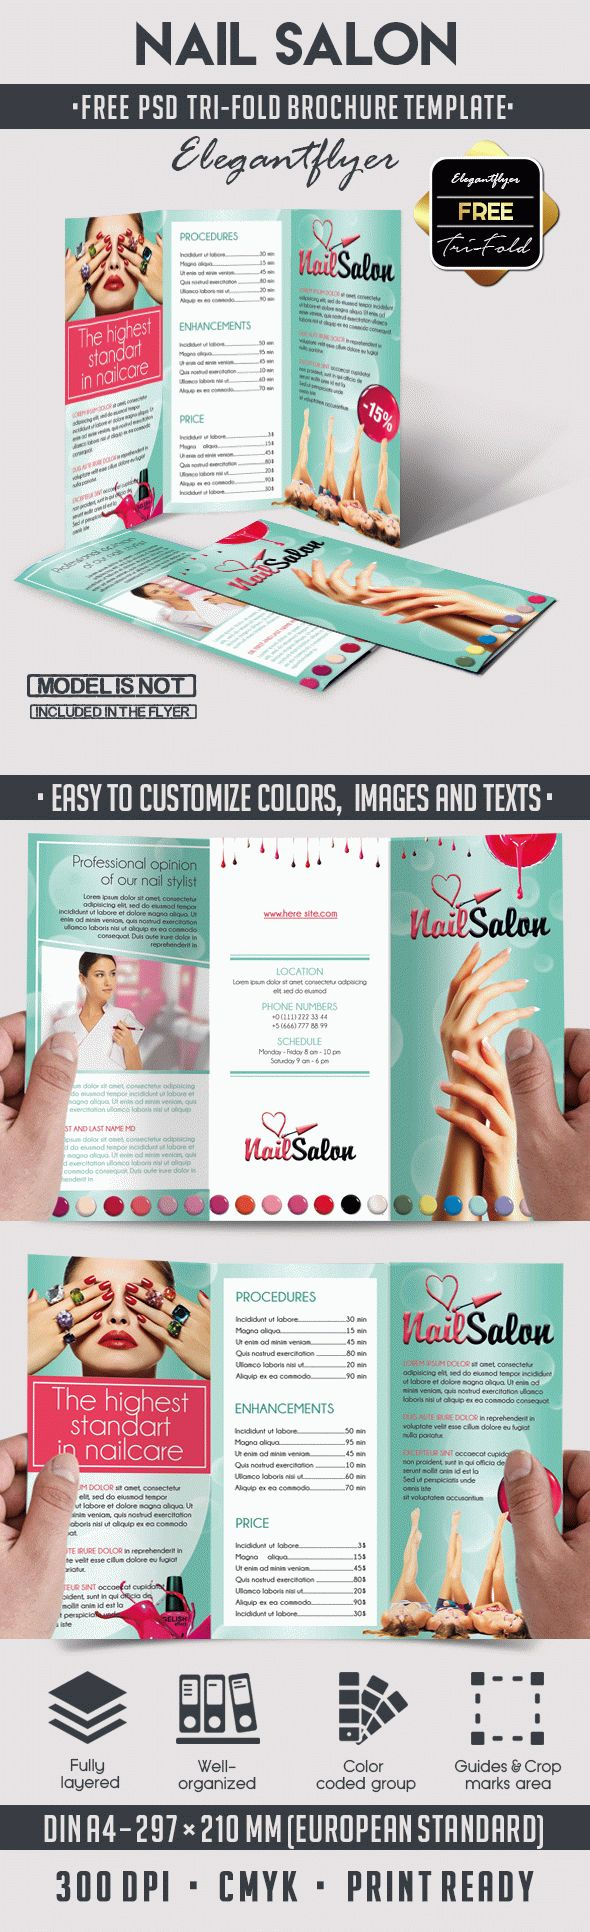 Nail free tri fold psd brochure template by elegantflyer for Free psd brochure template